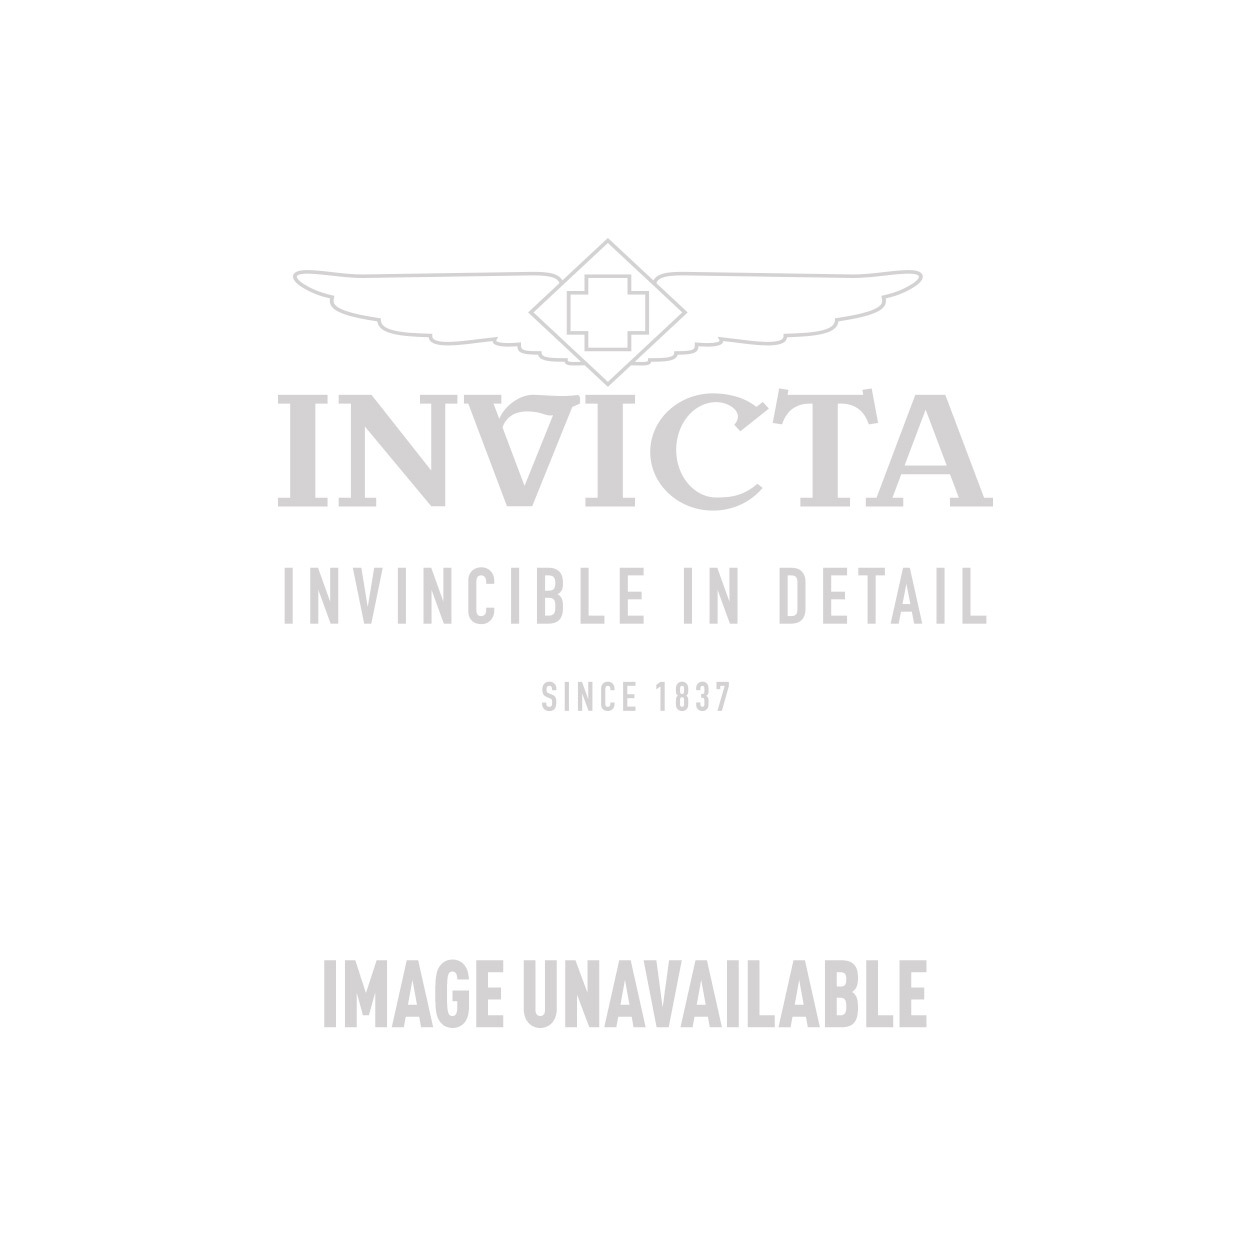 Invicta 1 Slot Impact Case - Model DC1BLU/BLK